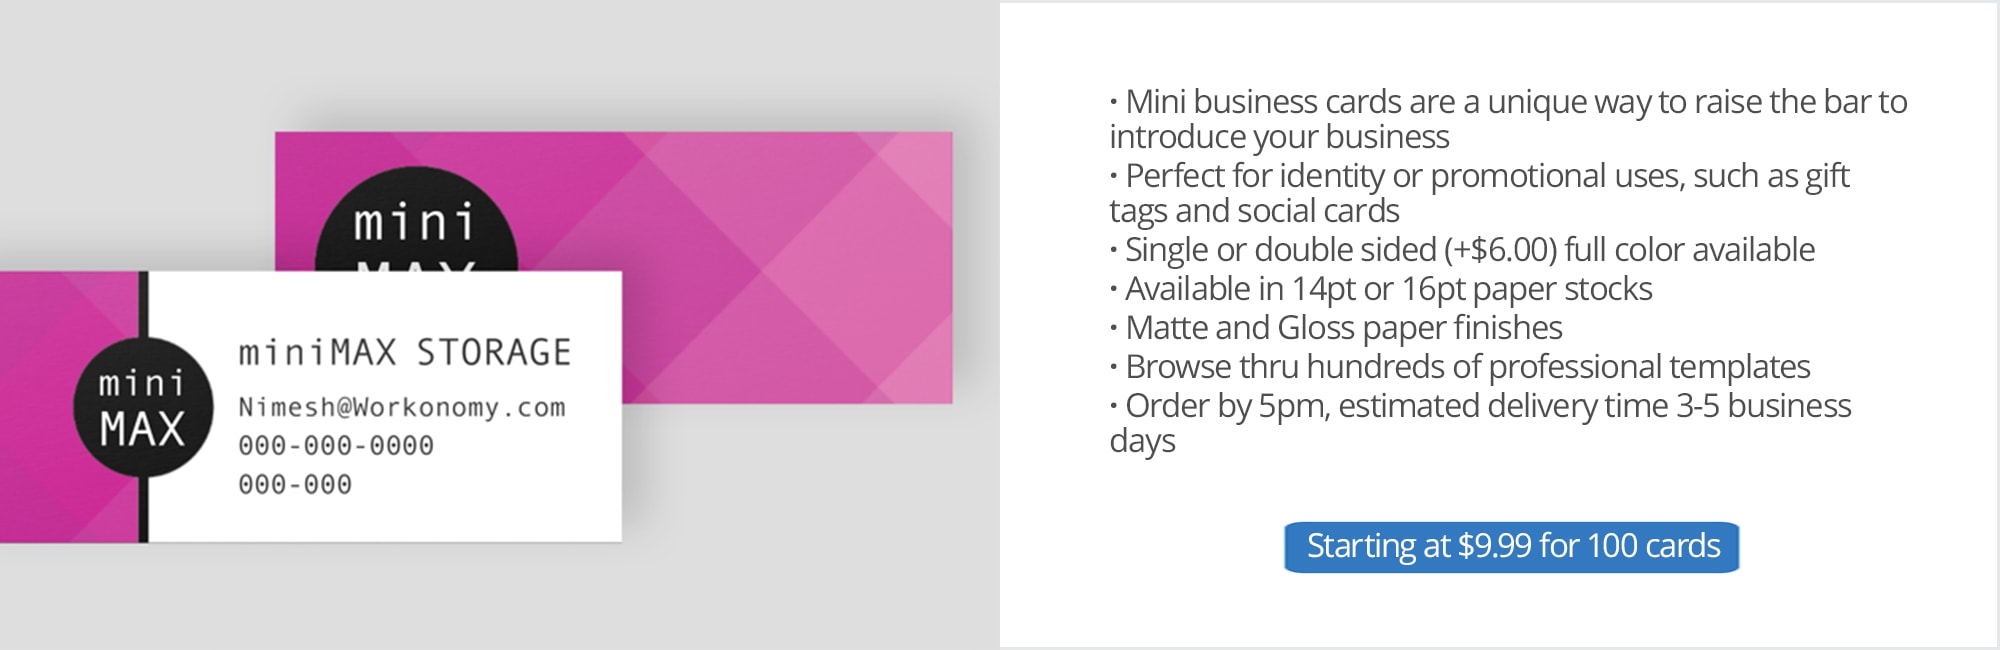 mini_business_cards_redesignv2